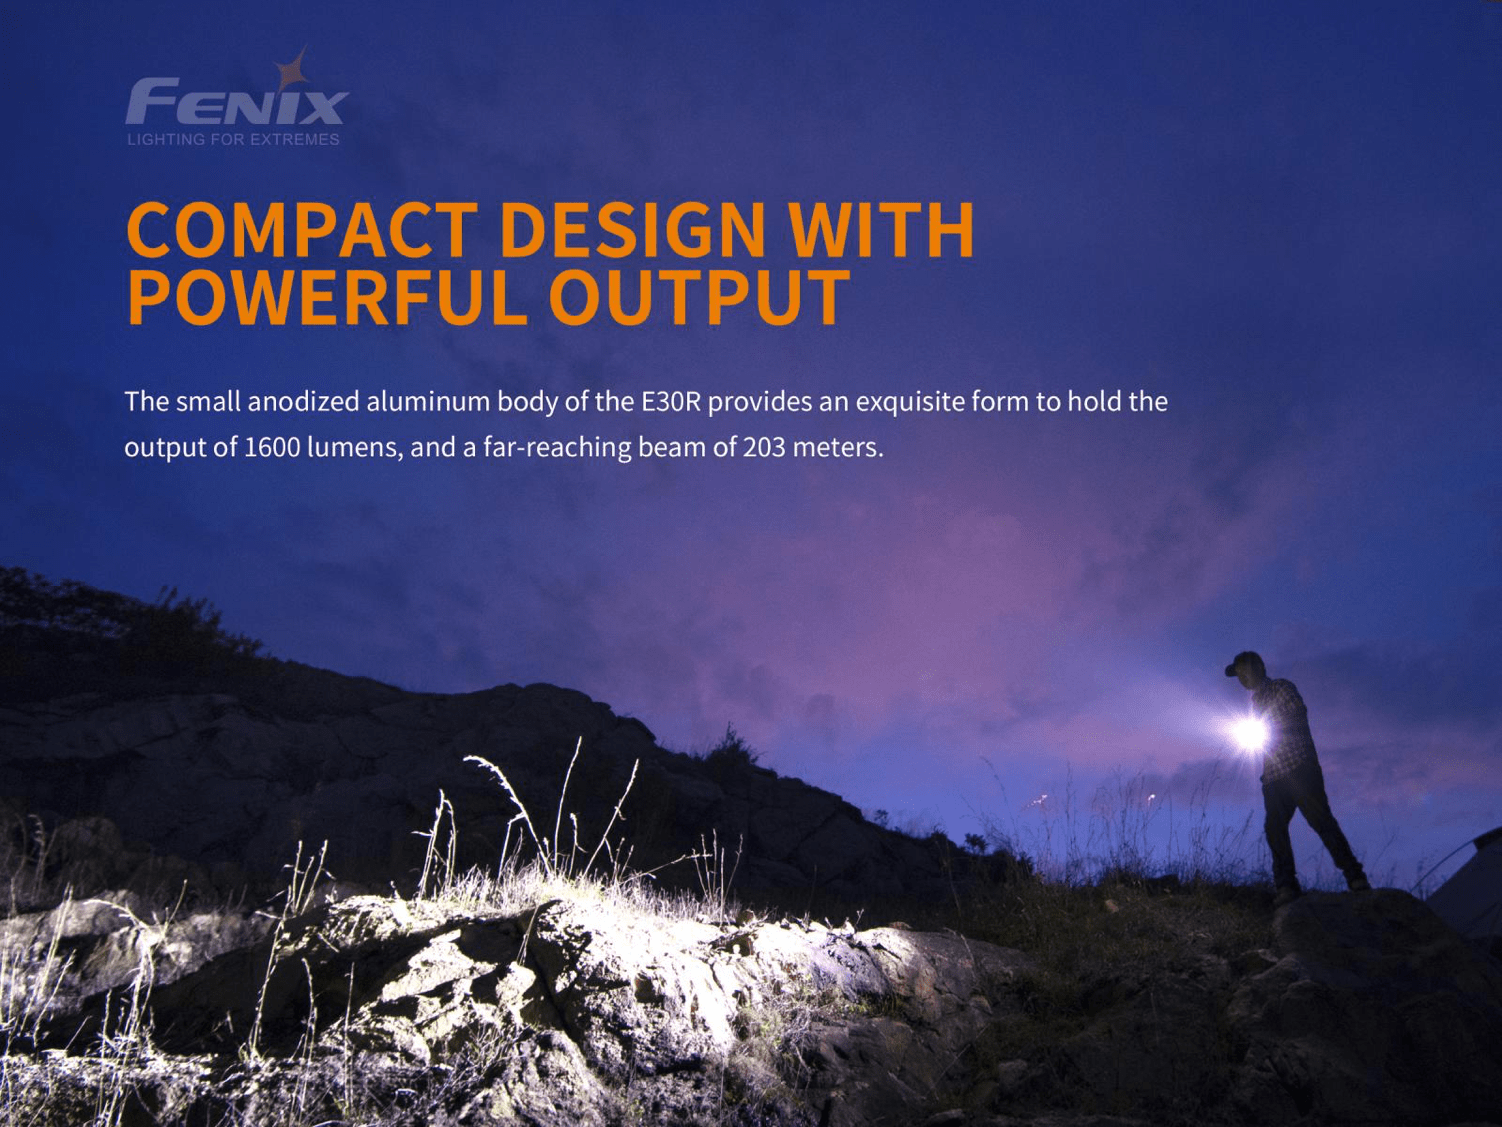 Fenix E30R Rechargeable LED Flashlight in India, 1600 Lumens extremely powerful Everyday carry and outdoor compact Torch